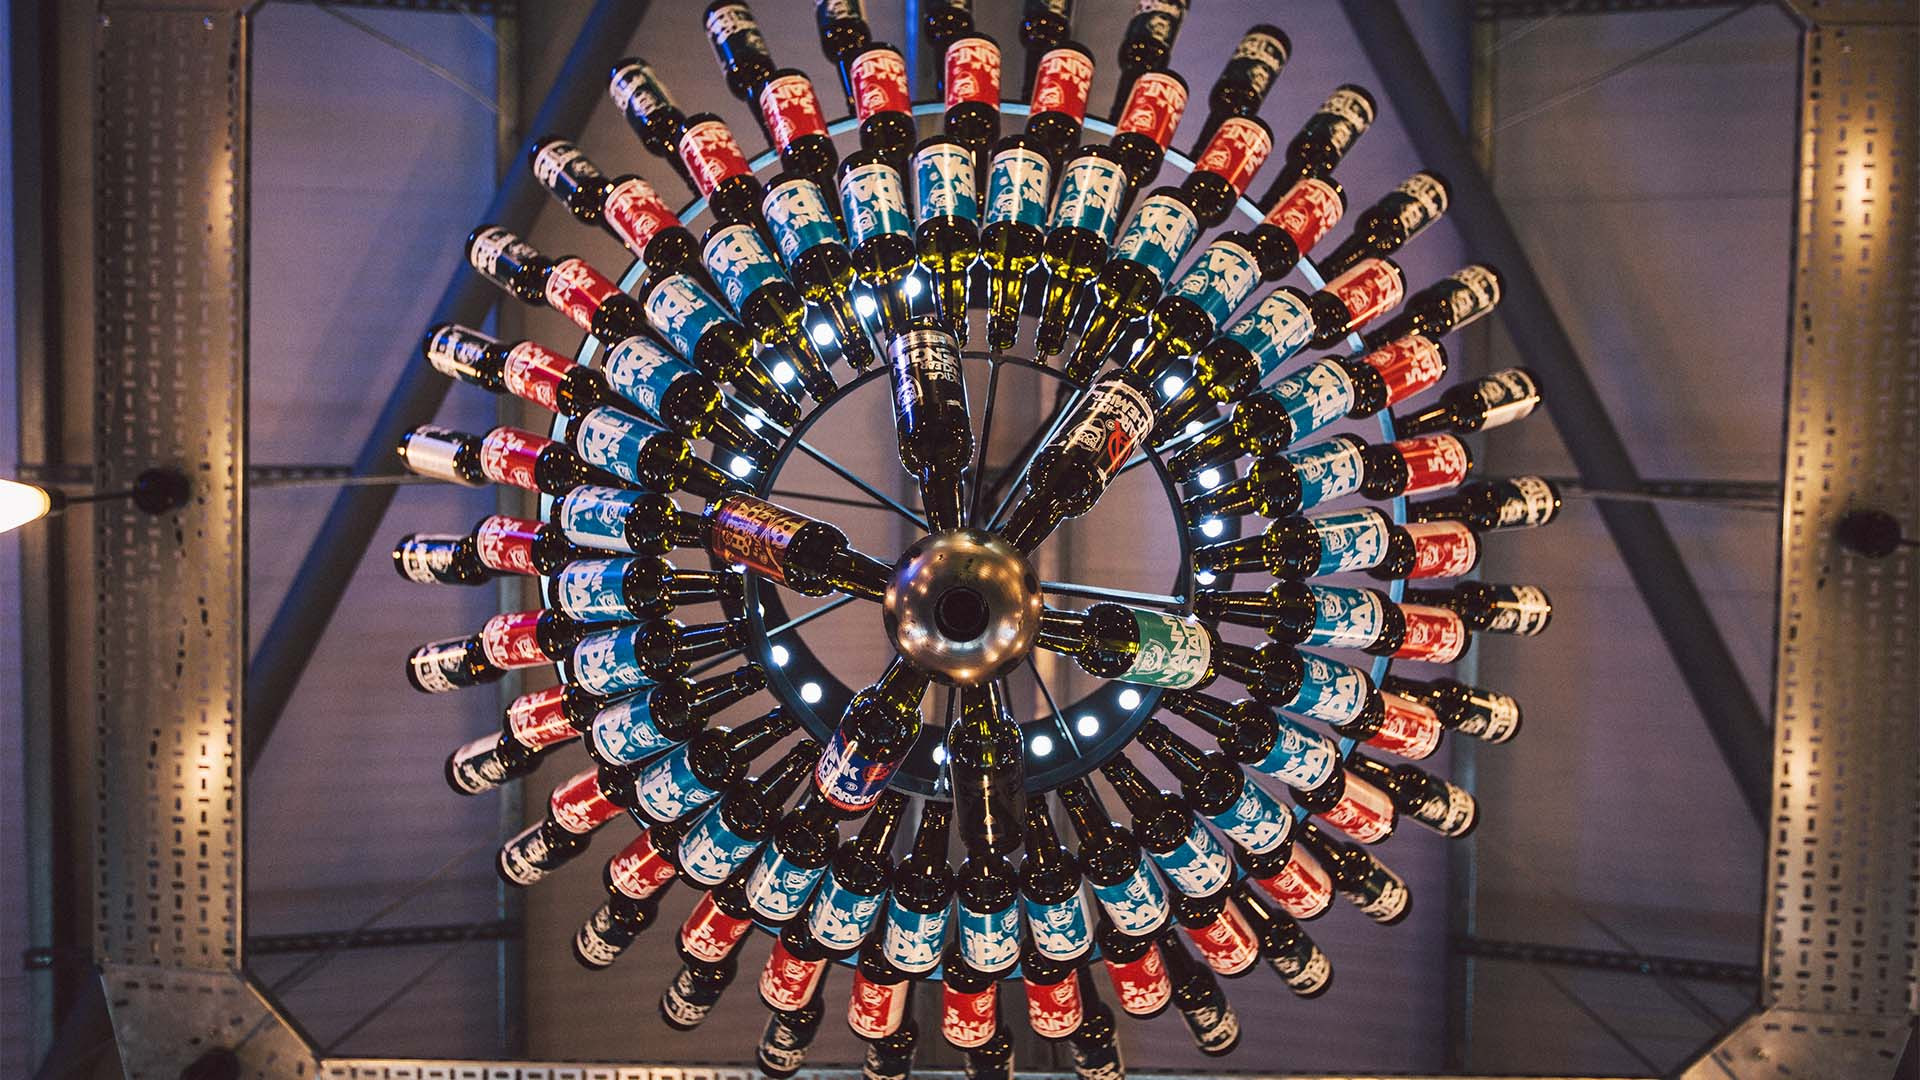 Beer chandelier at BrewDog brewery, Aberdeenshire, Scotland